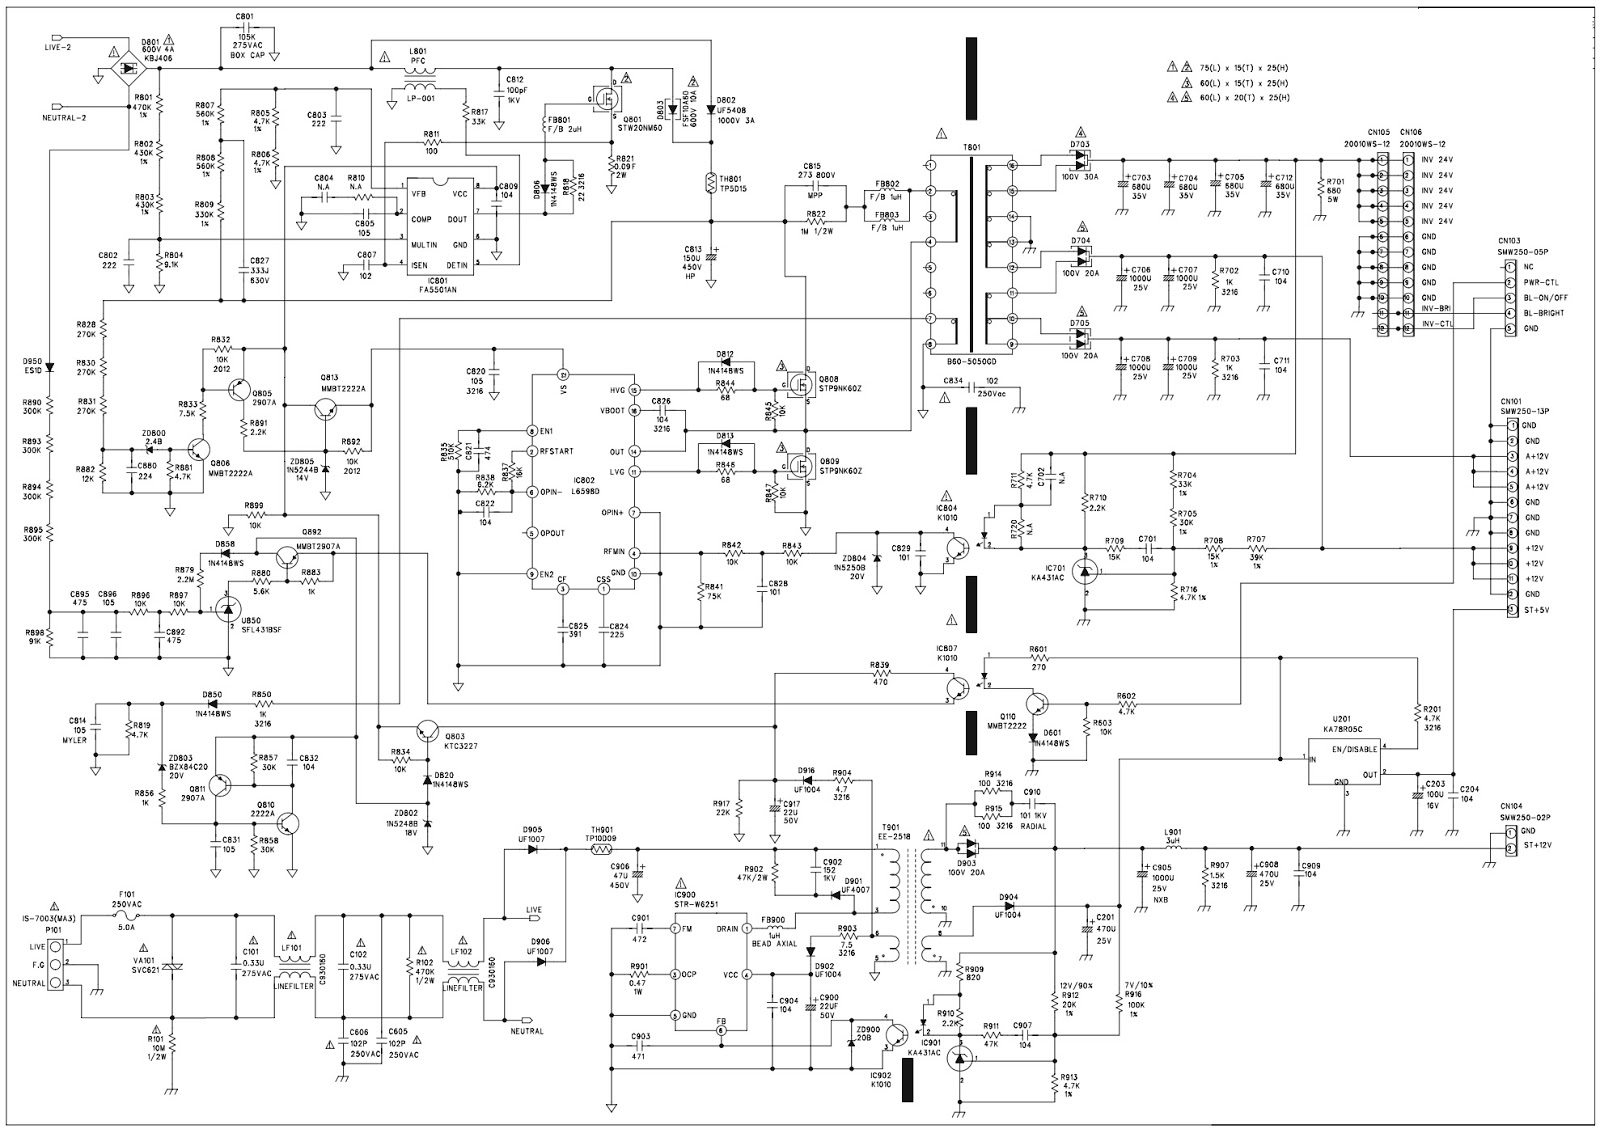 computer smps circuit diagram the wiring diagram computer smps circuit diagram vidim wiring diagram circuit diagram